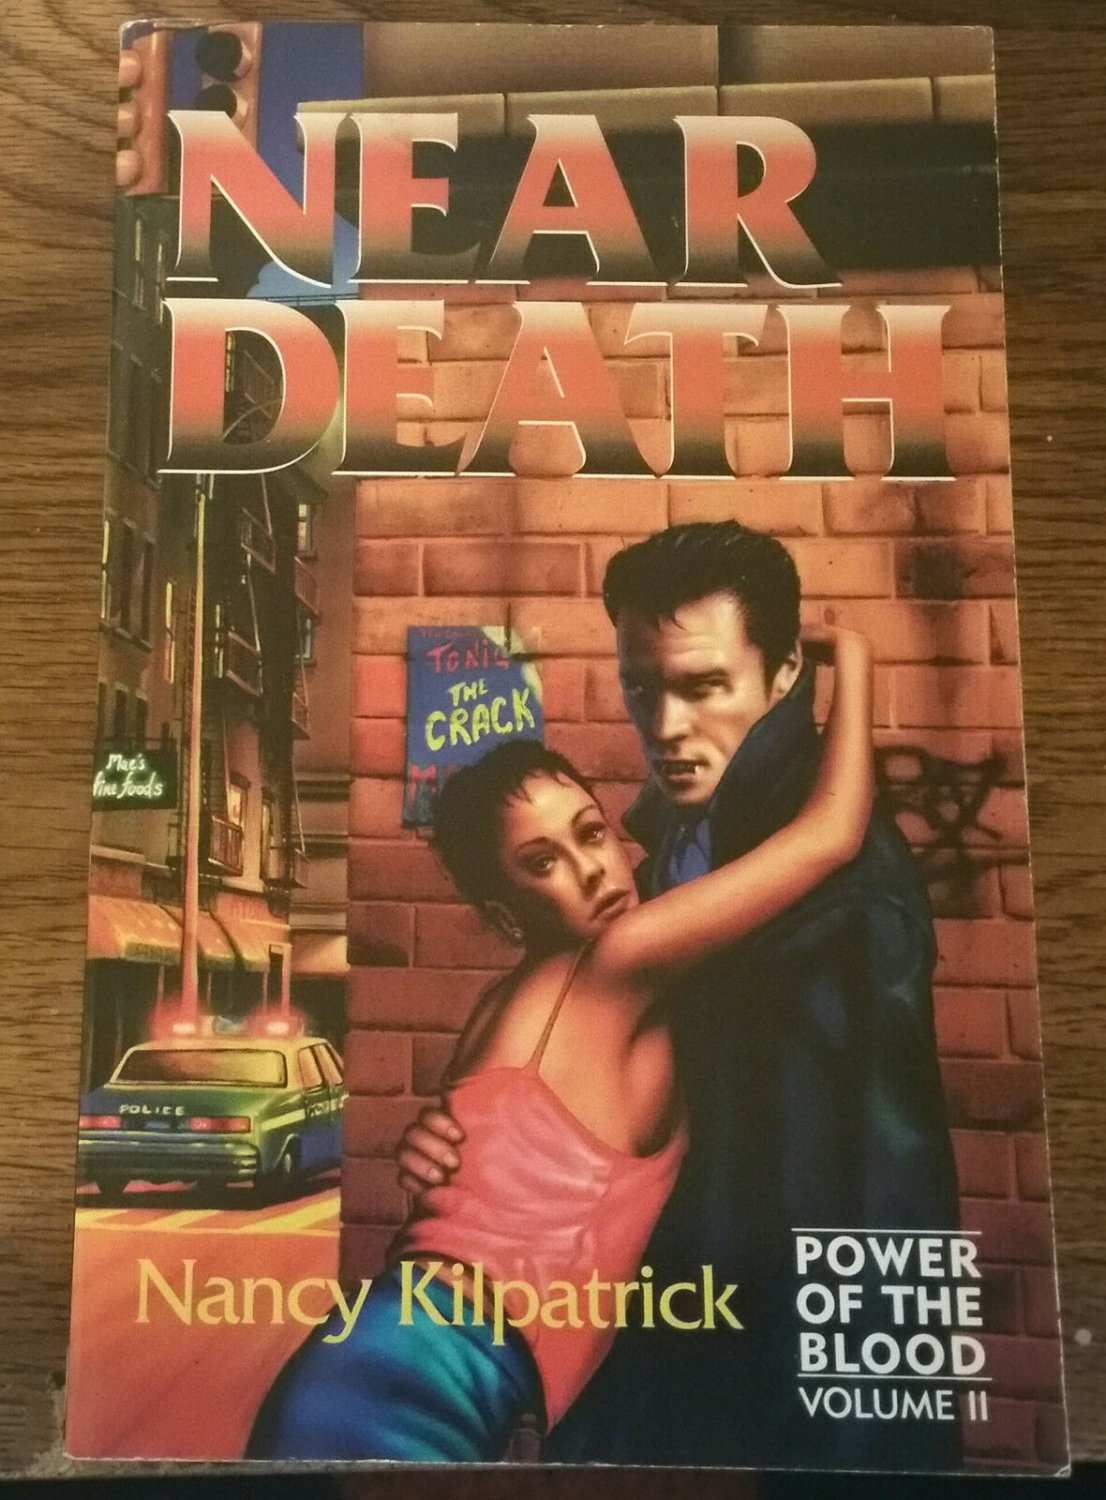 Near Death: Power of the Blood Vol. II by Nancy Kilpatrick  - 1st Pb. Edn.